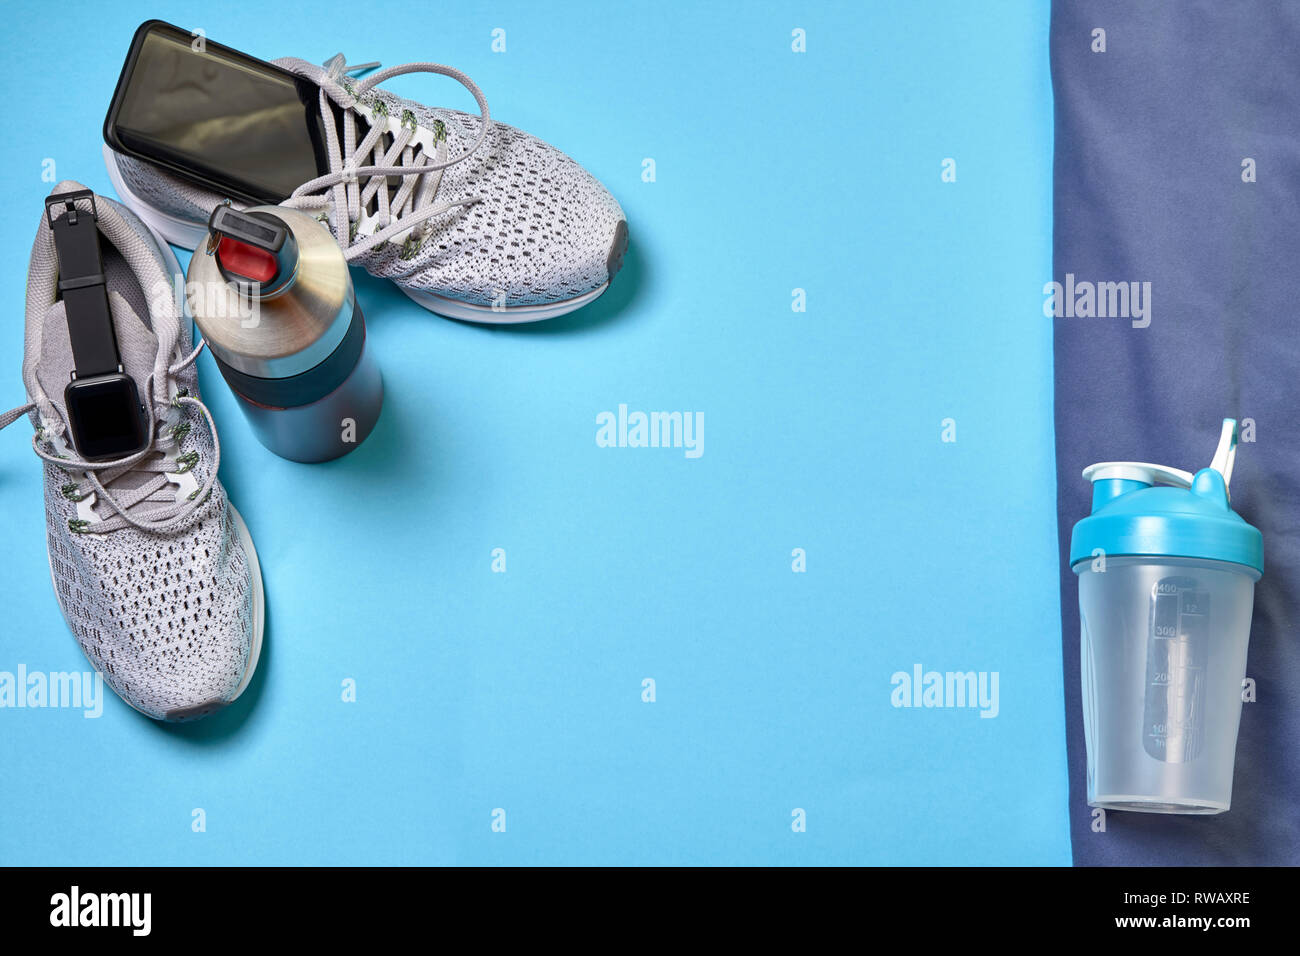 Running shoes with technological accessories and next to a boat of water on a blue background - Stock Image